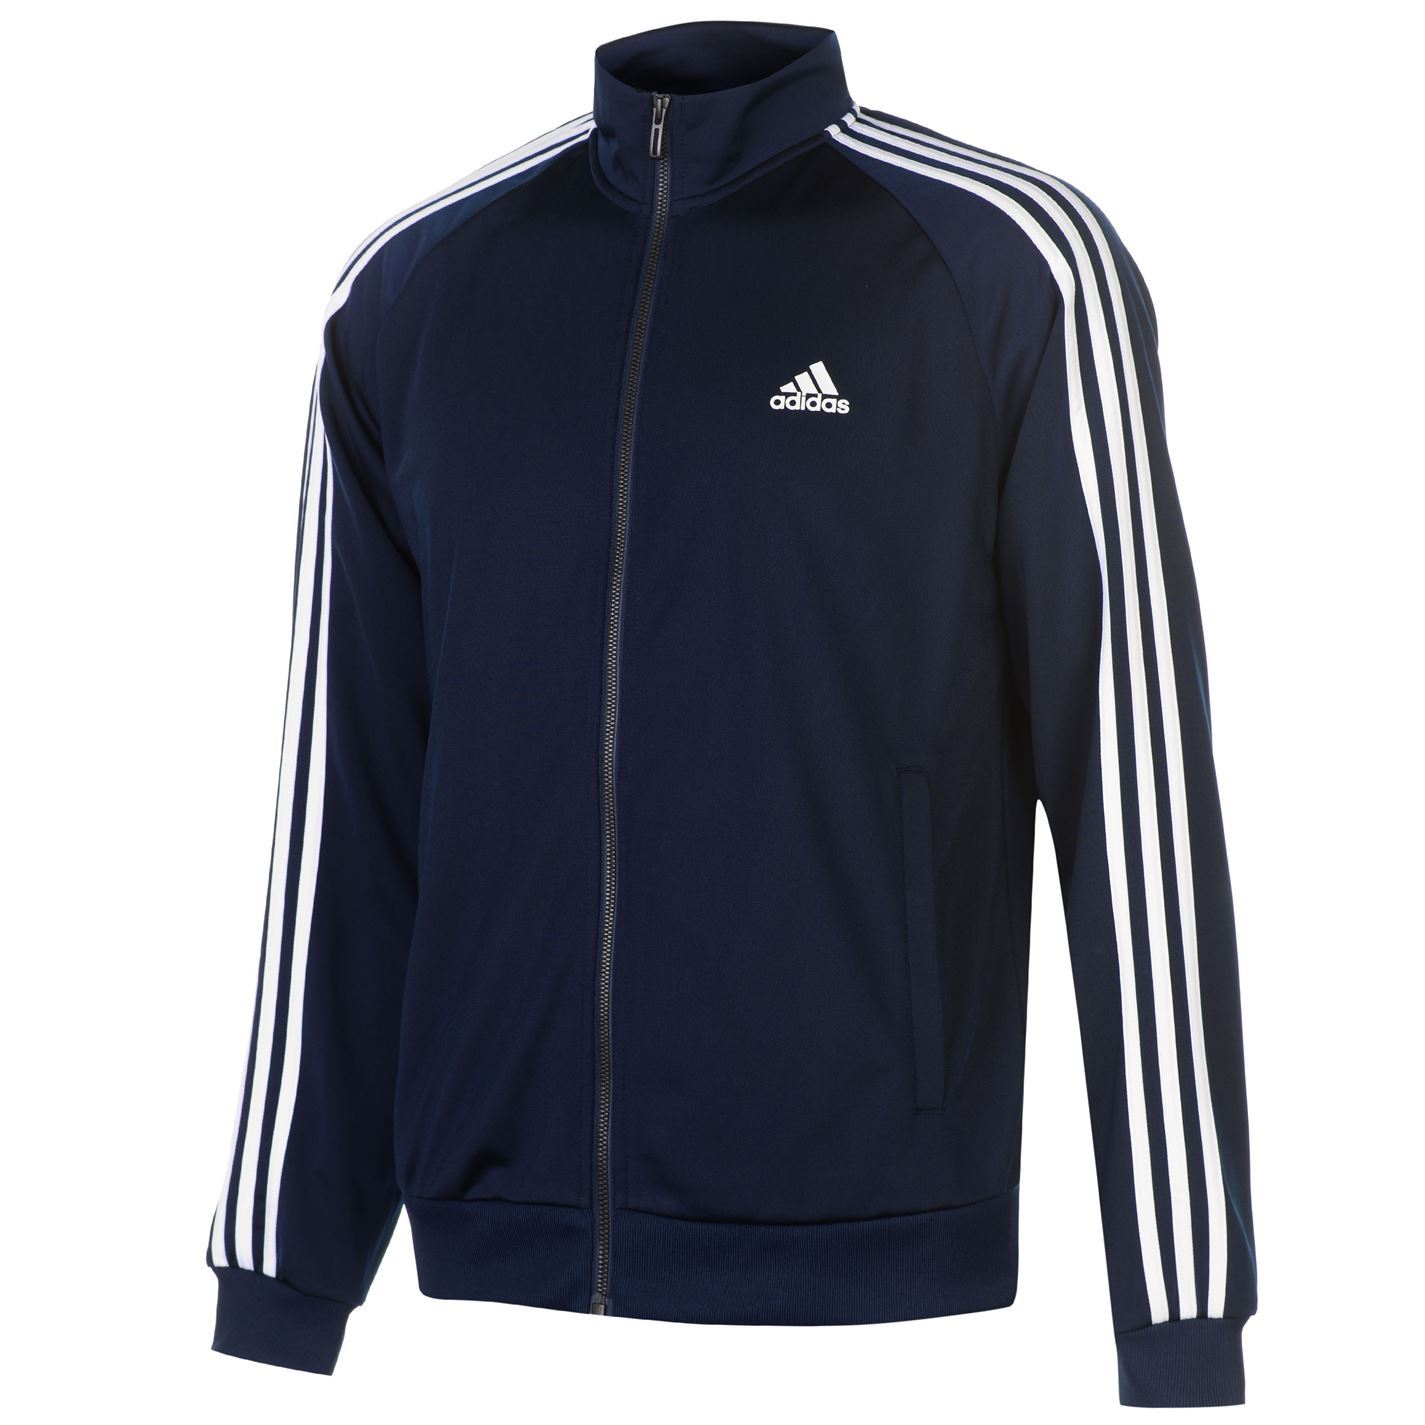 ec0fda67ef83 The adidas Essential 3 Stripe Track Top is designed with a full zip  fastening